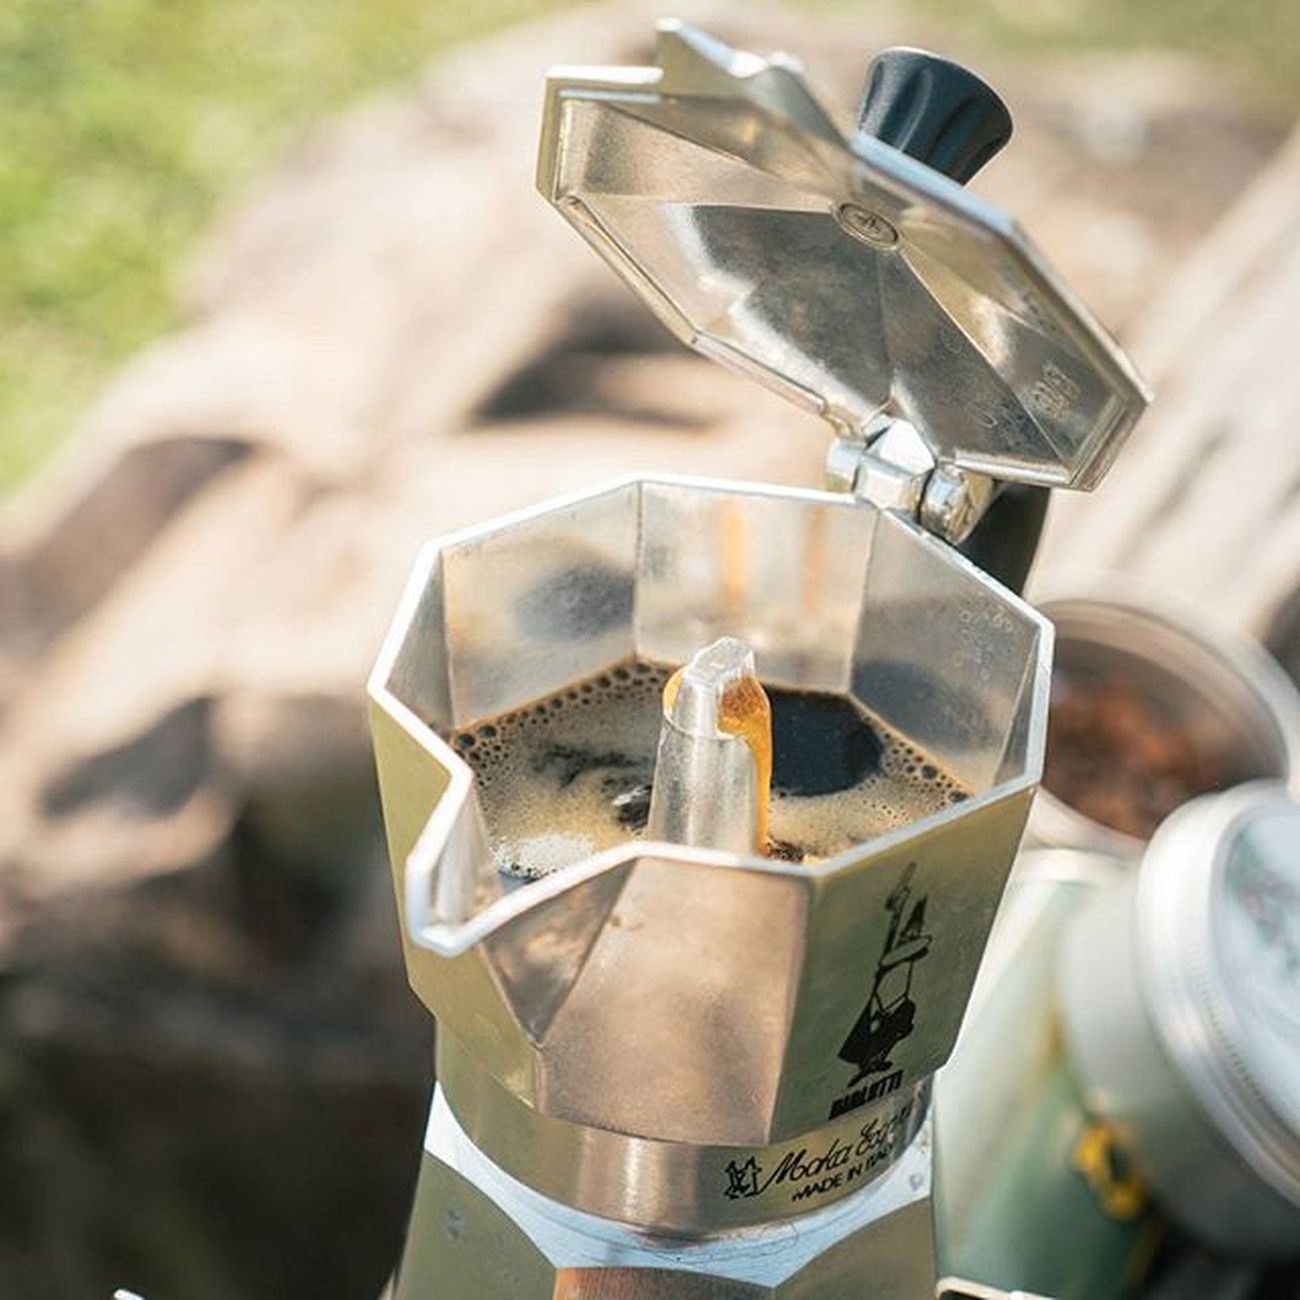 เพราะน้ำคือชีวิต แค่เพิ่มกาแฟอีกนิดแล้วชีวิตจะสดชื่น Manualbrewonly Coffee Grinder Mokapot Mokacoffee Brewing Grinders Coffeegeek Coffeegram Manualbrewing Manualbrew Specialtycoffee Coffeebeans Coffeeoftheday Singleorigin Coffeelover Blackcoffee Blackcoffeeonly Lumixgx8 Lumixfriend Lumixnzv Homebarista Alternativebrewing